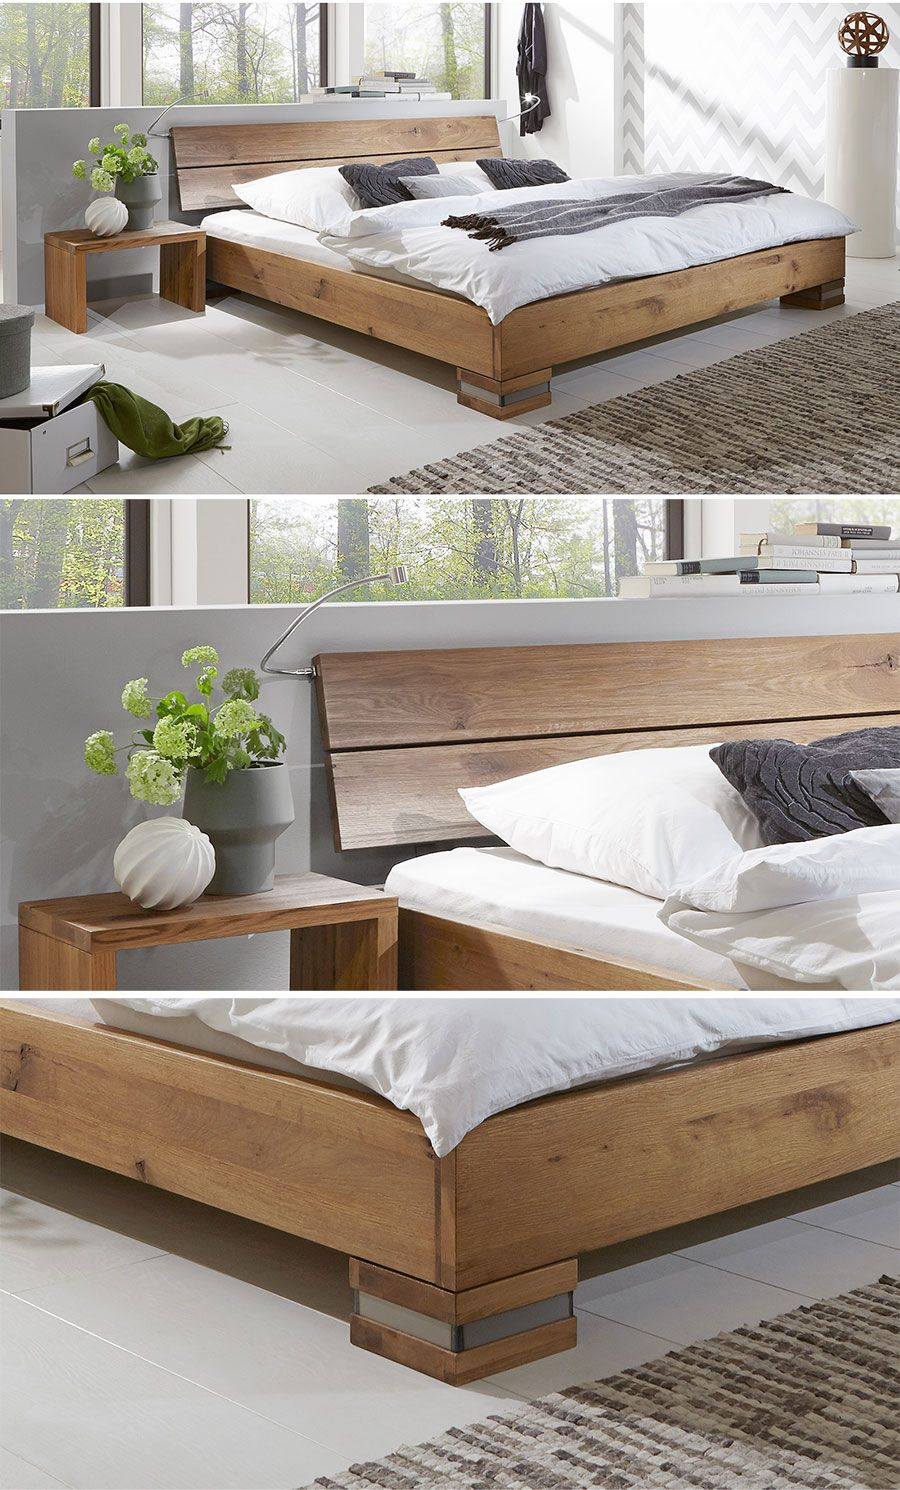 BALKENBETT Haineck   Modern Wood Bed Designs | Wood Bed | Pinterest | Wood  Beds, Platform Beds And Woods